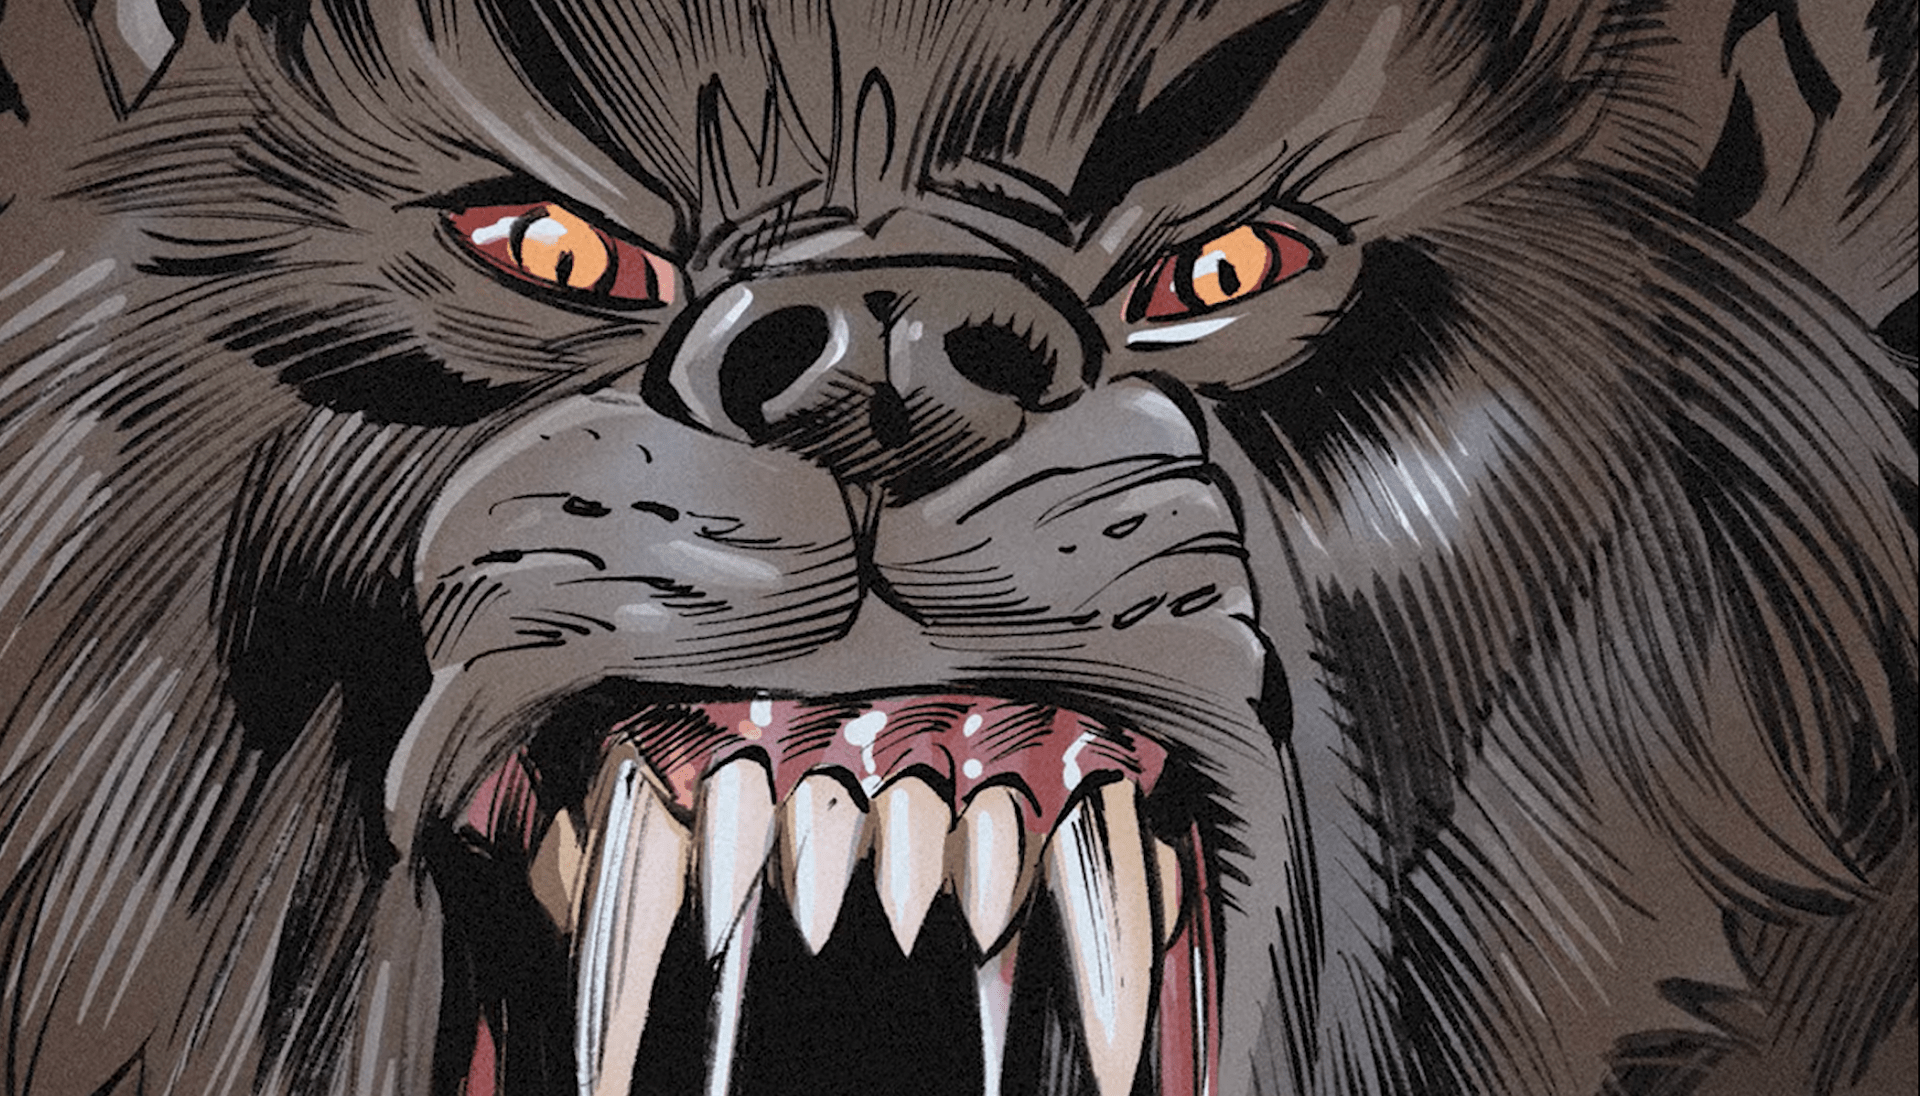 Marvel First Look: 'Werewolf by Night' #1 trailer features Taboo and Ben Jackendoff